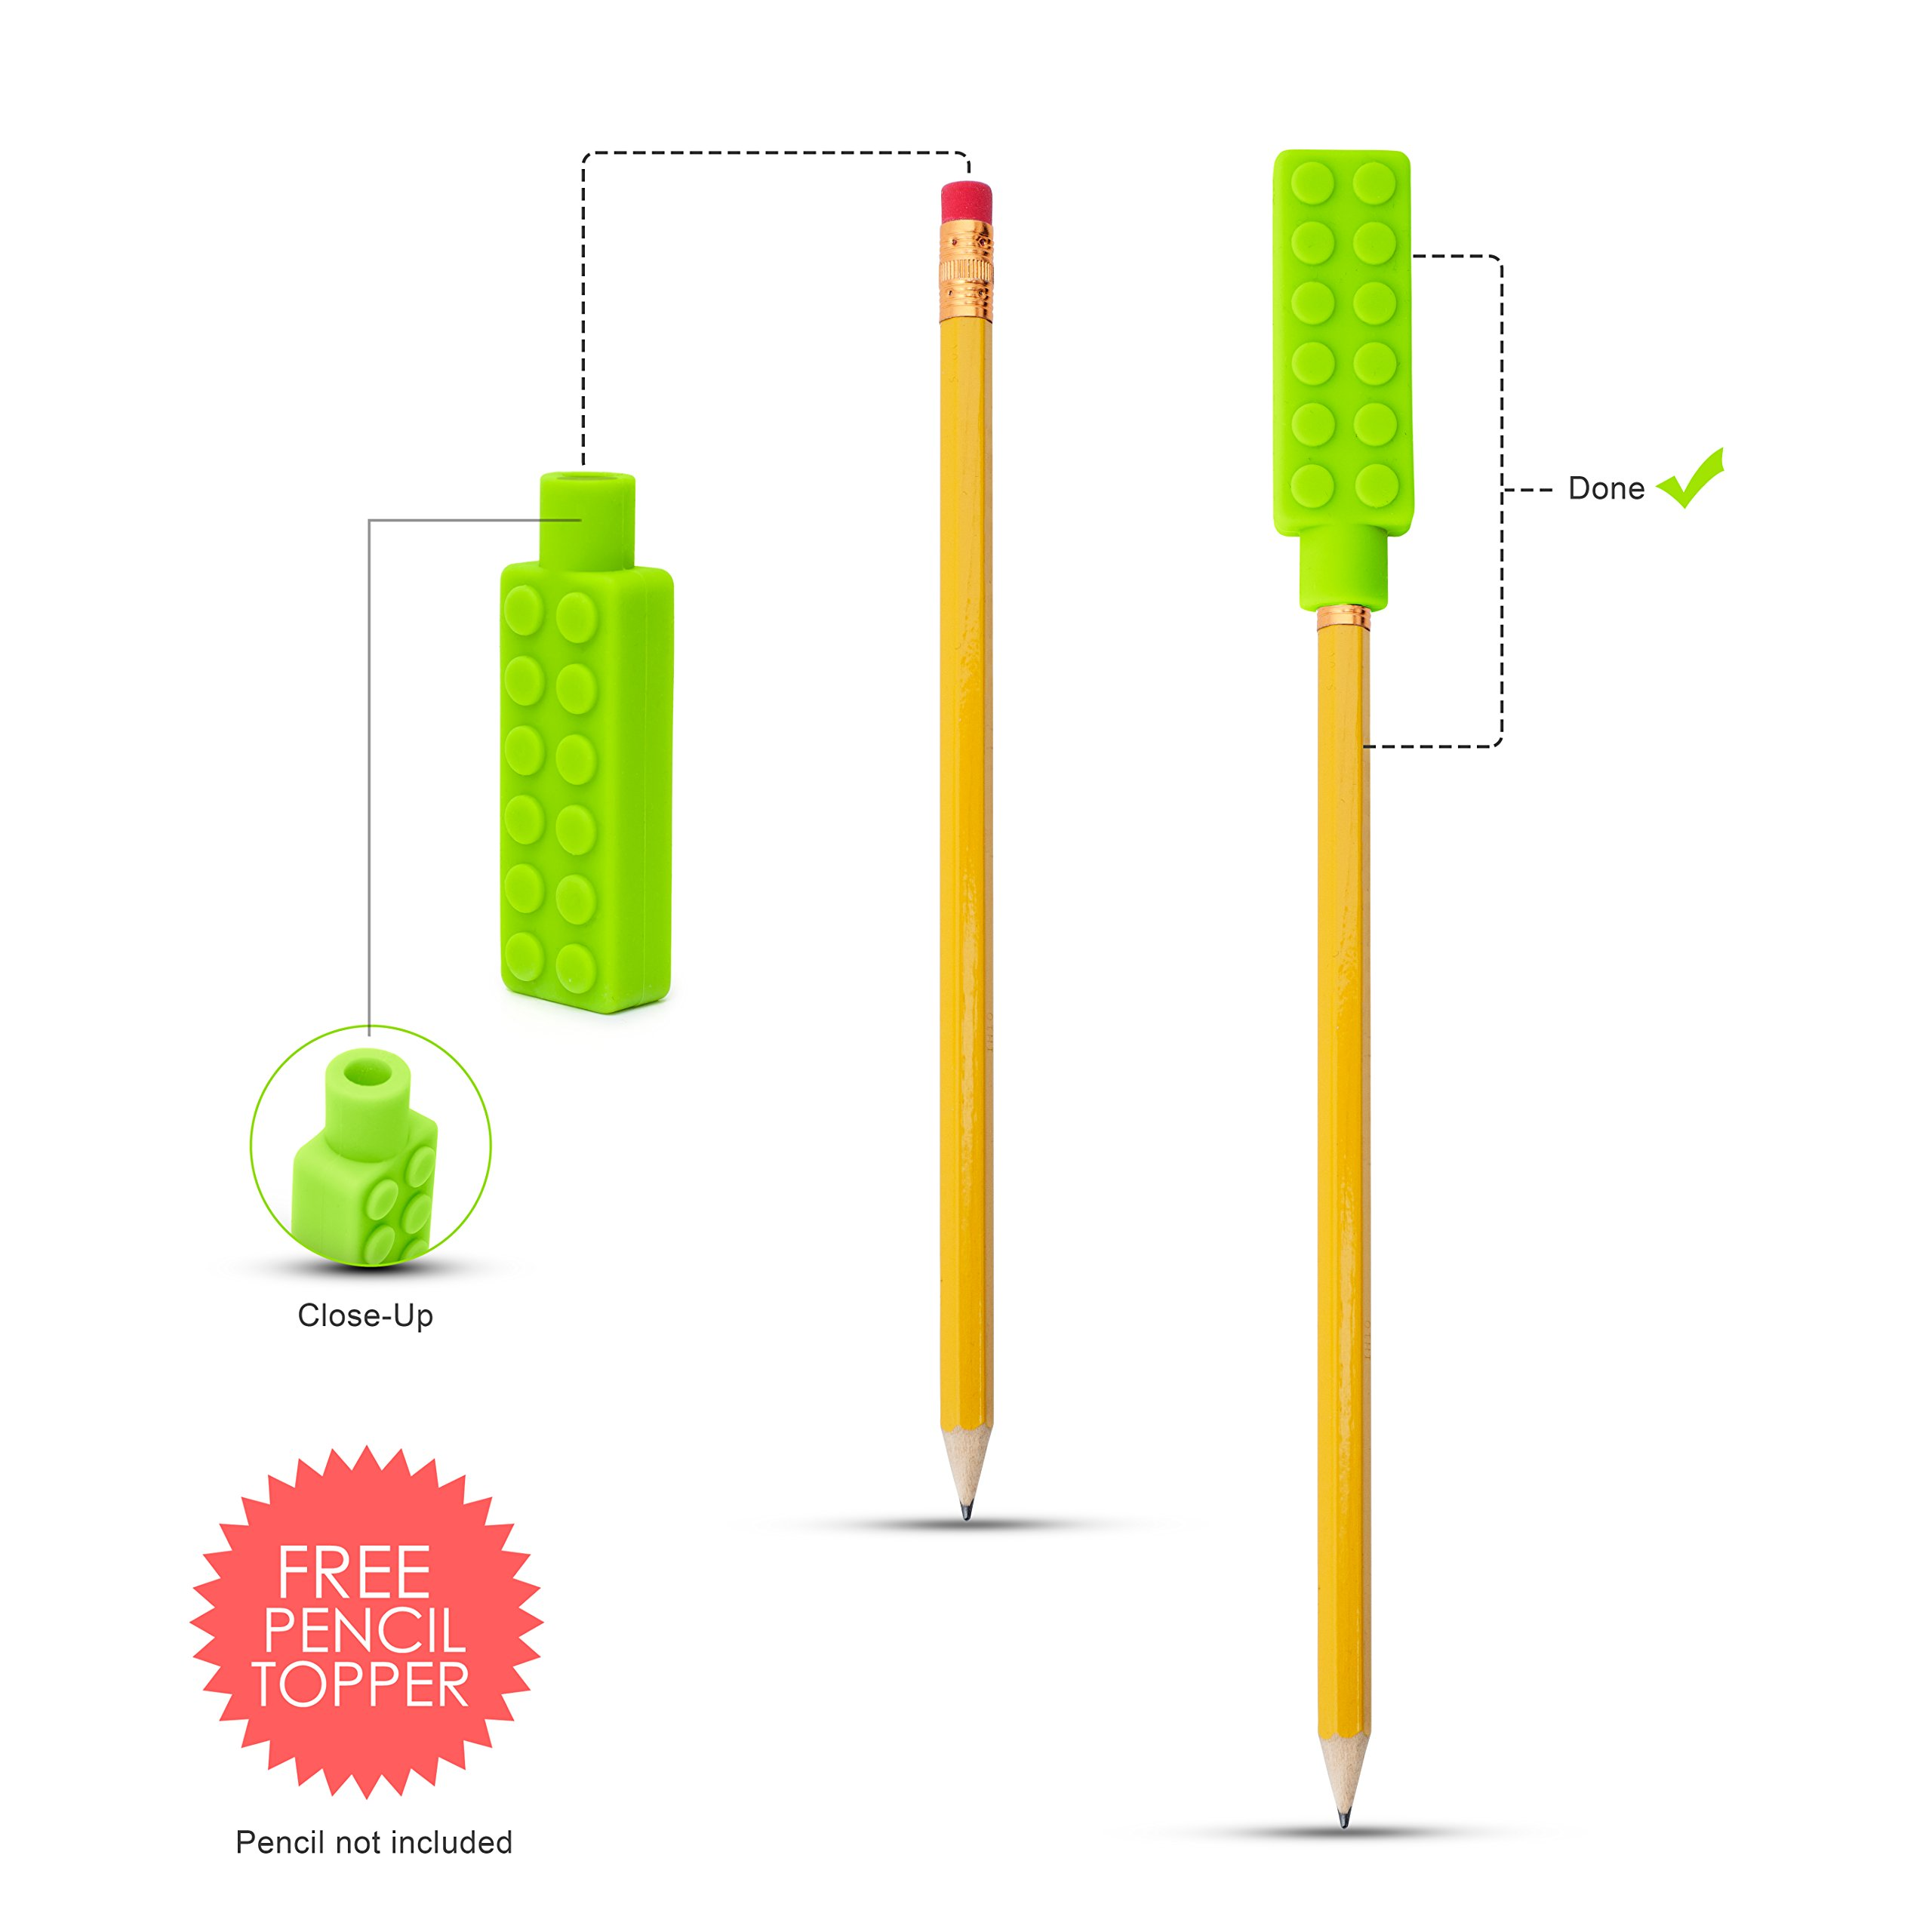 Sensory Necklace (2 PACK + FREE PENCIL TOPPER) - Chewy Necklace - Sensory Chewelry for Kids with Autism ADHD Biting Needs - Chew Toy for Boys and Girls - MORE FIRM by Optimum (Image #7)